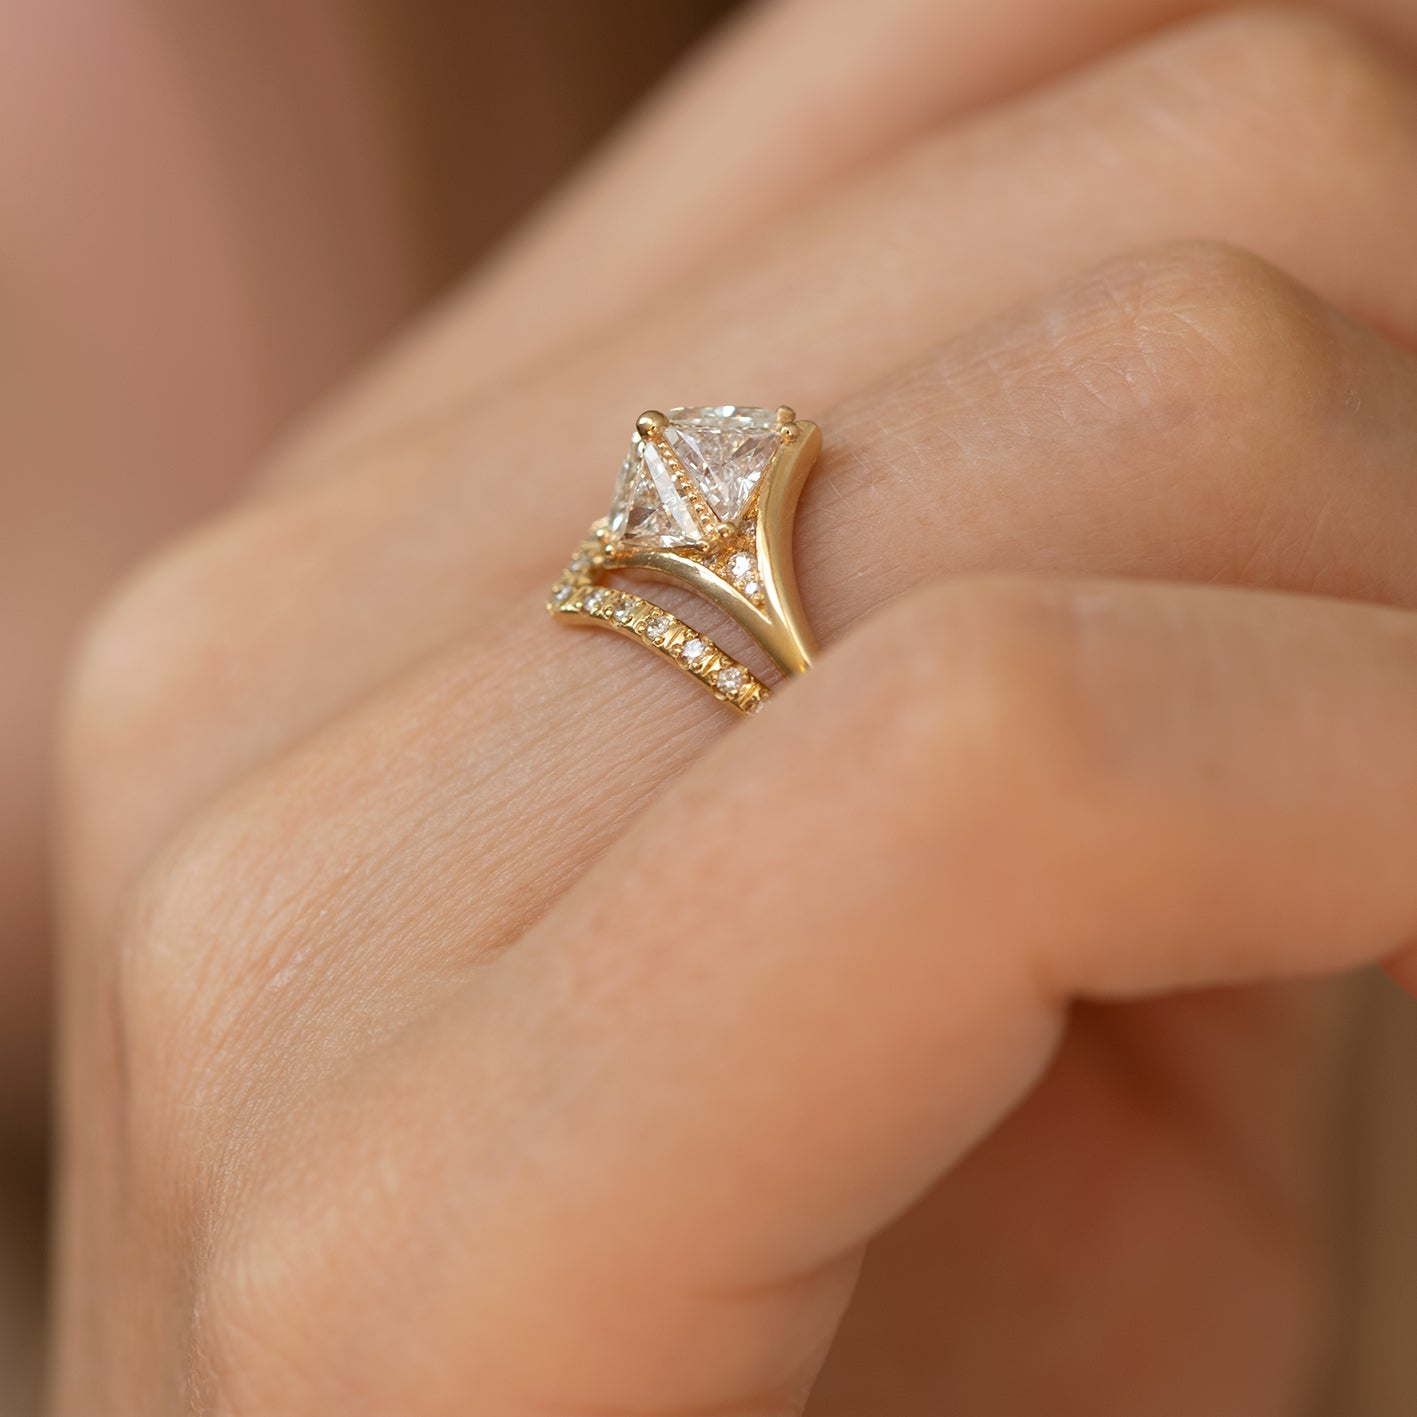 Detailed Star Engagement Ring5